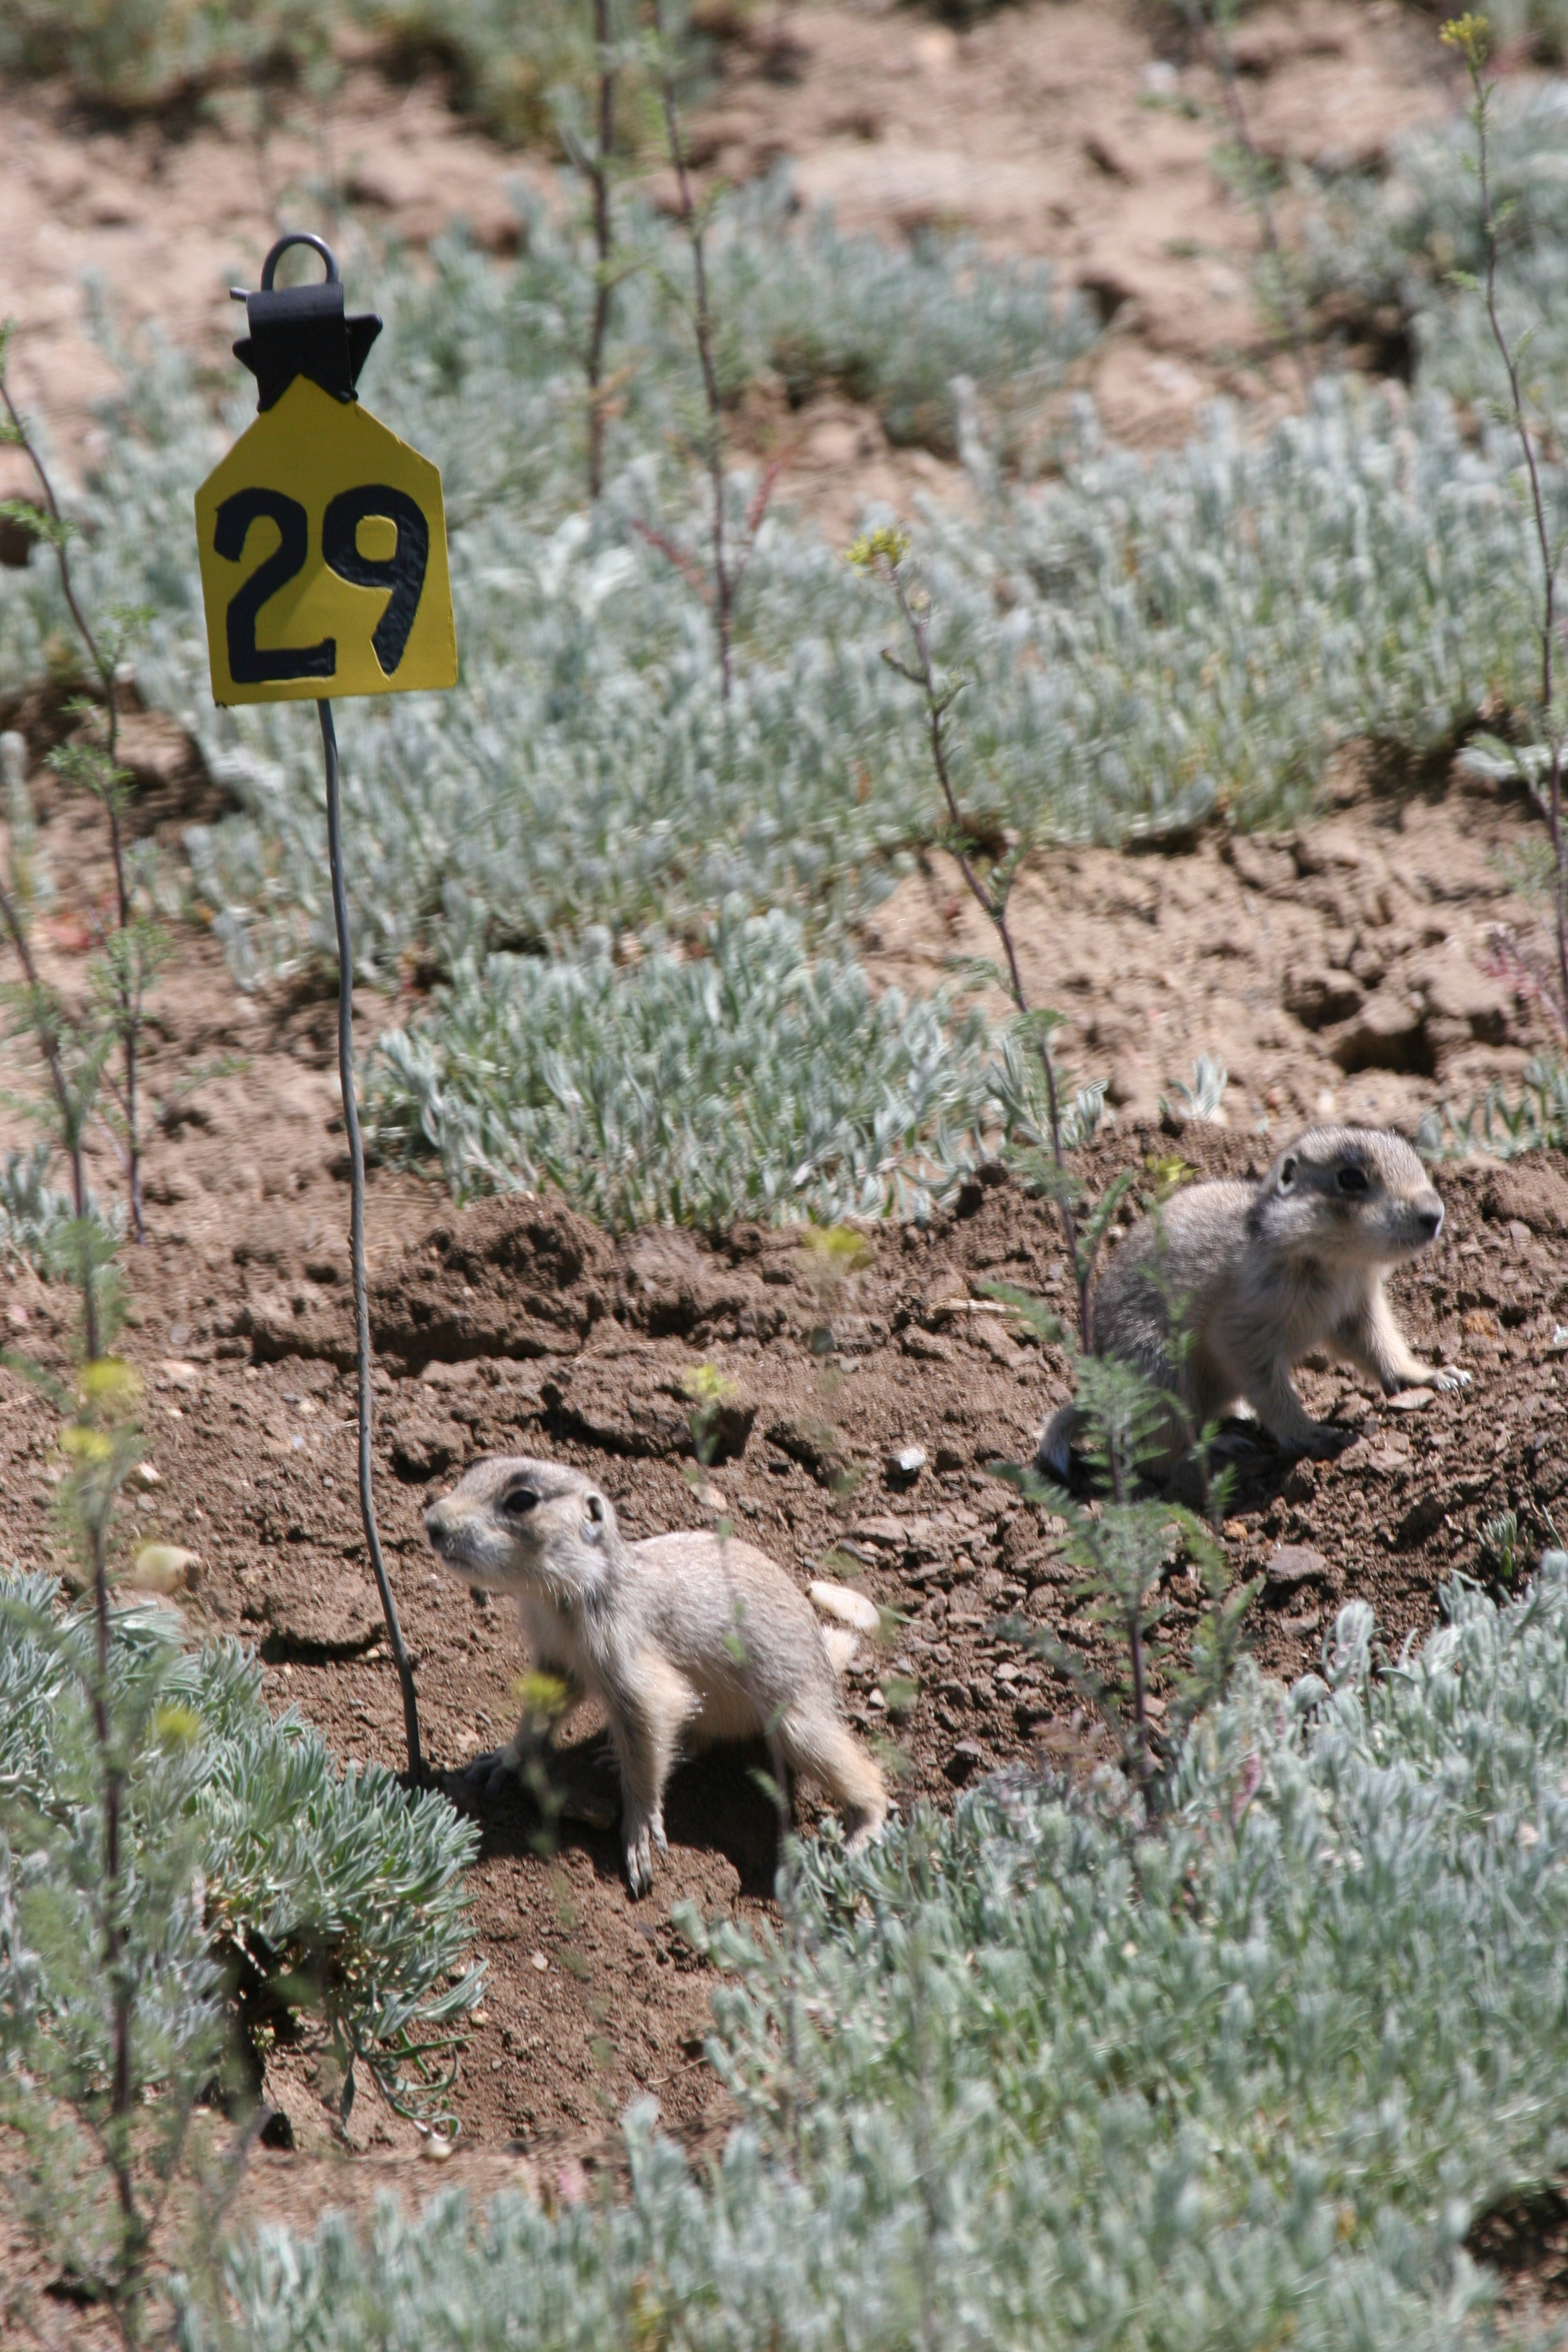 When they first emerge, baby prairie dogs will tentatively remain near their burrow. ©John Hoogland 2007